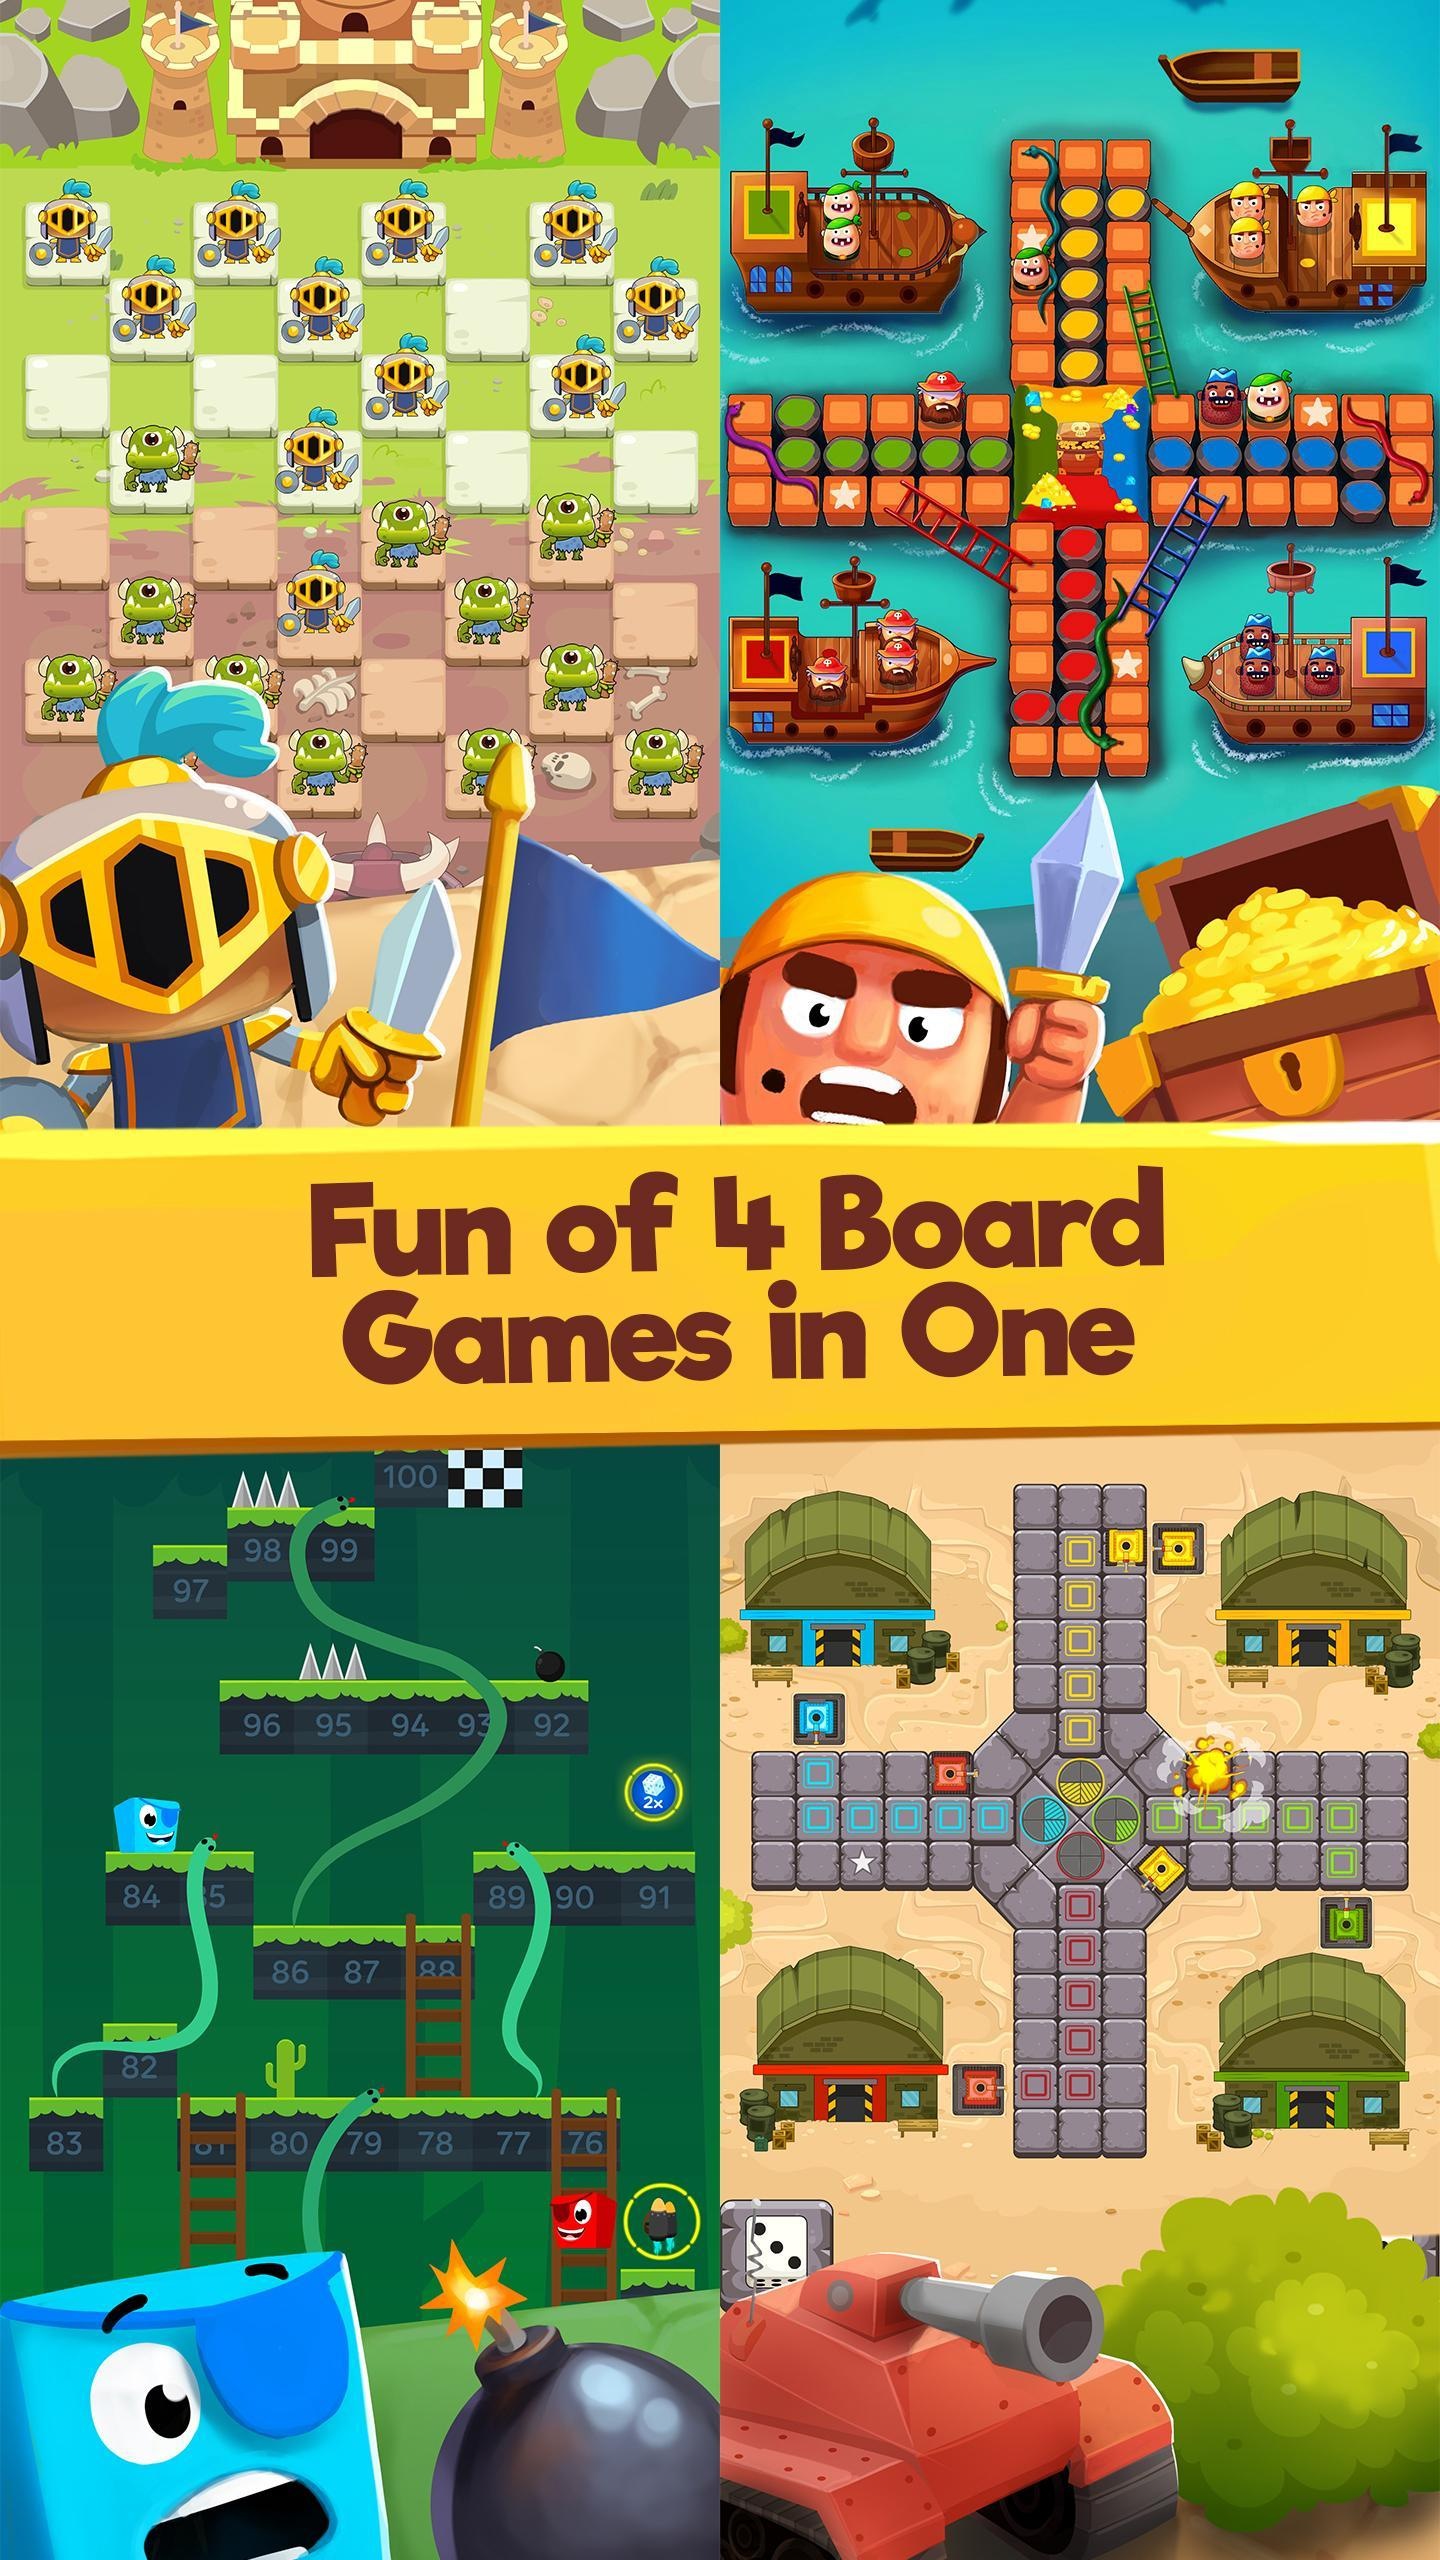 Family Board Games All In One Offline 2.1 Screenshot 13